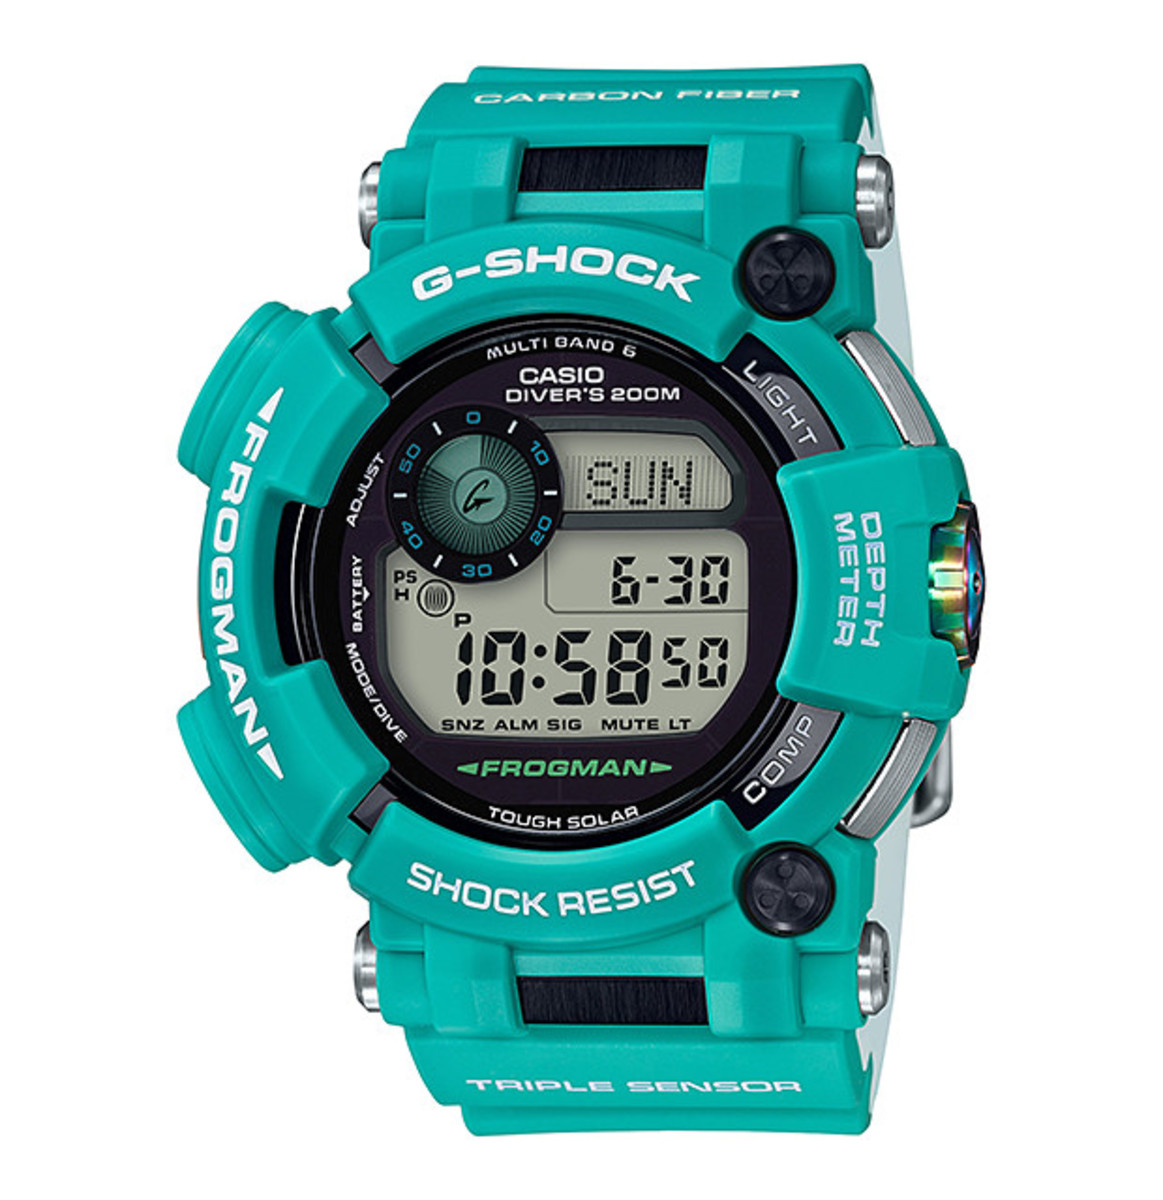 g-shock-master-in-marine-blue-collection-03